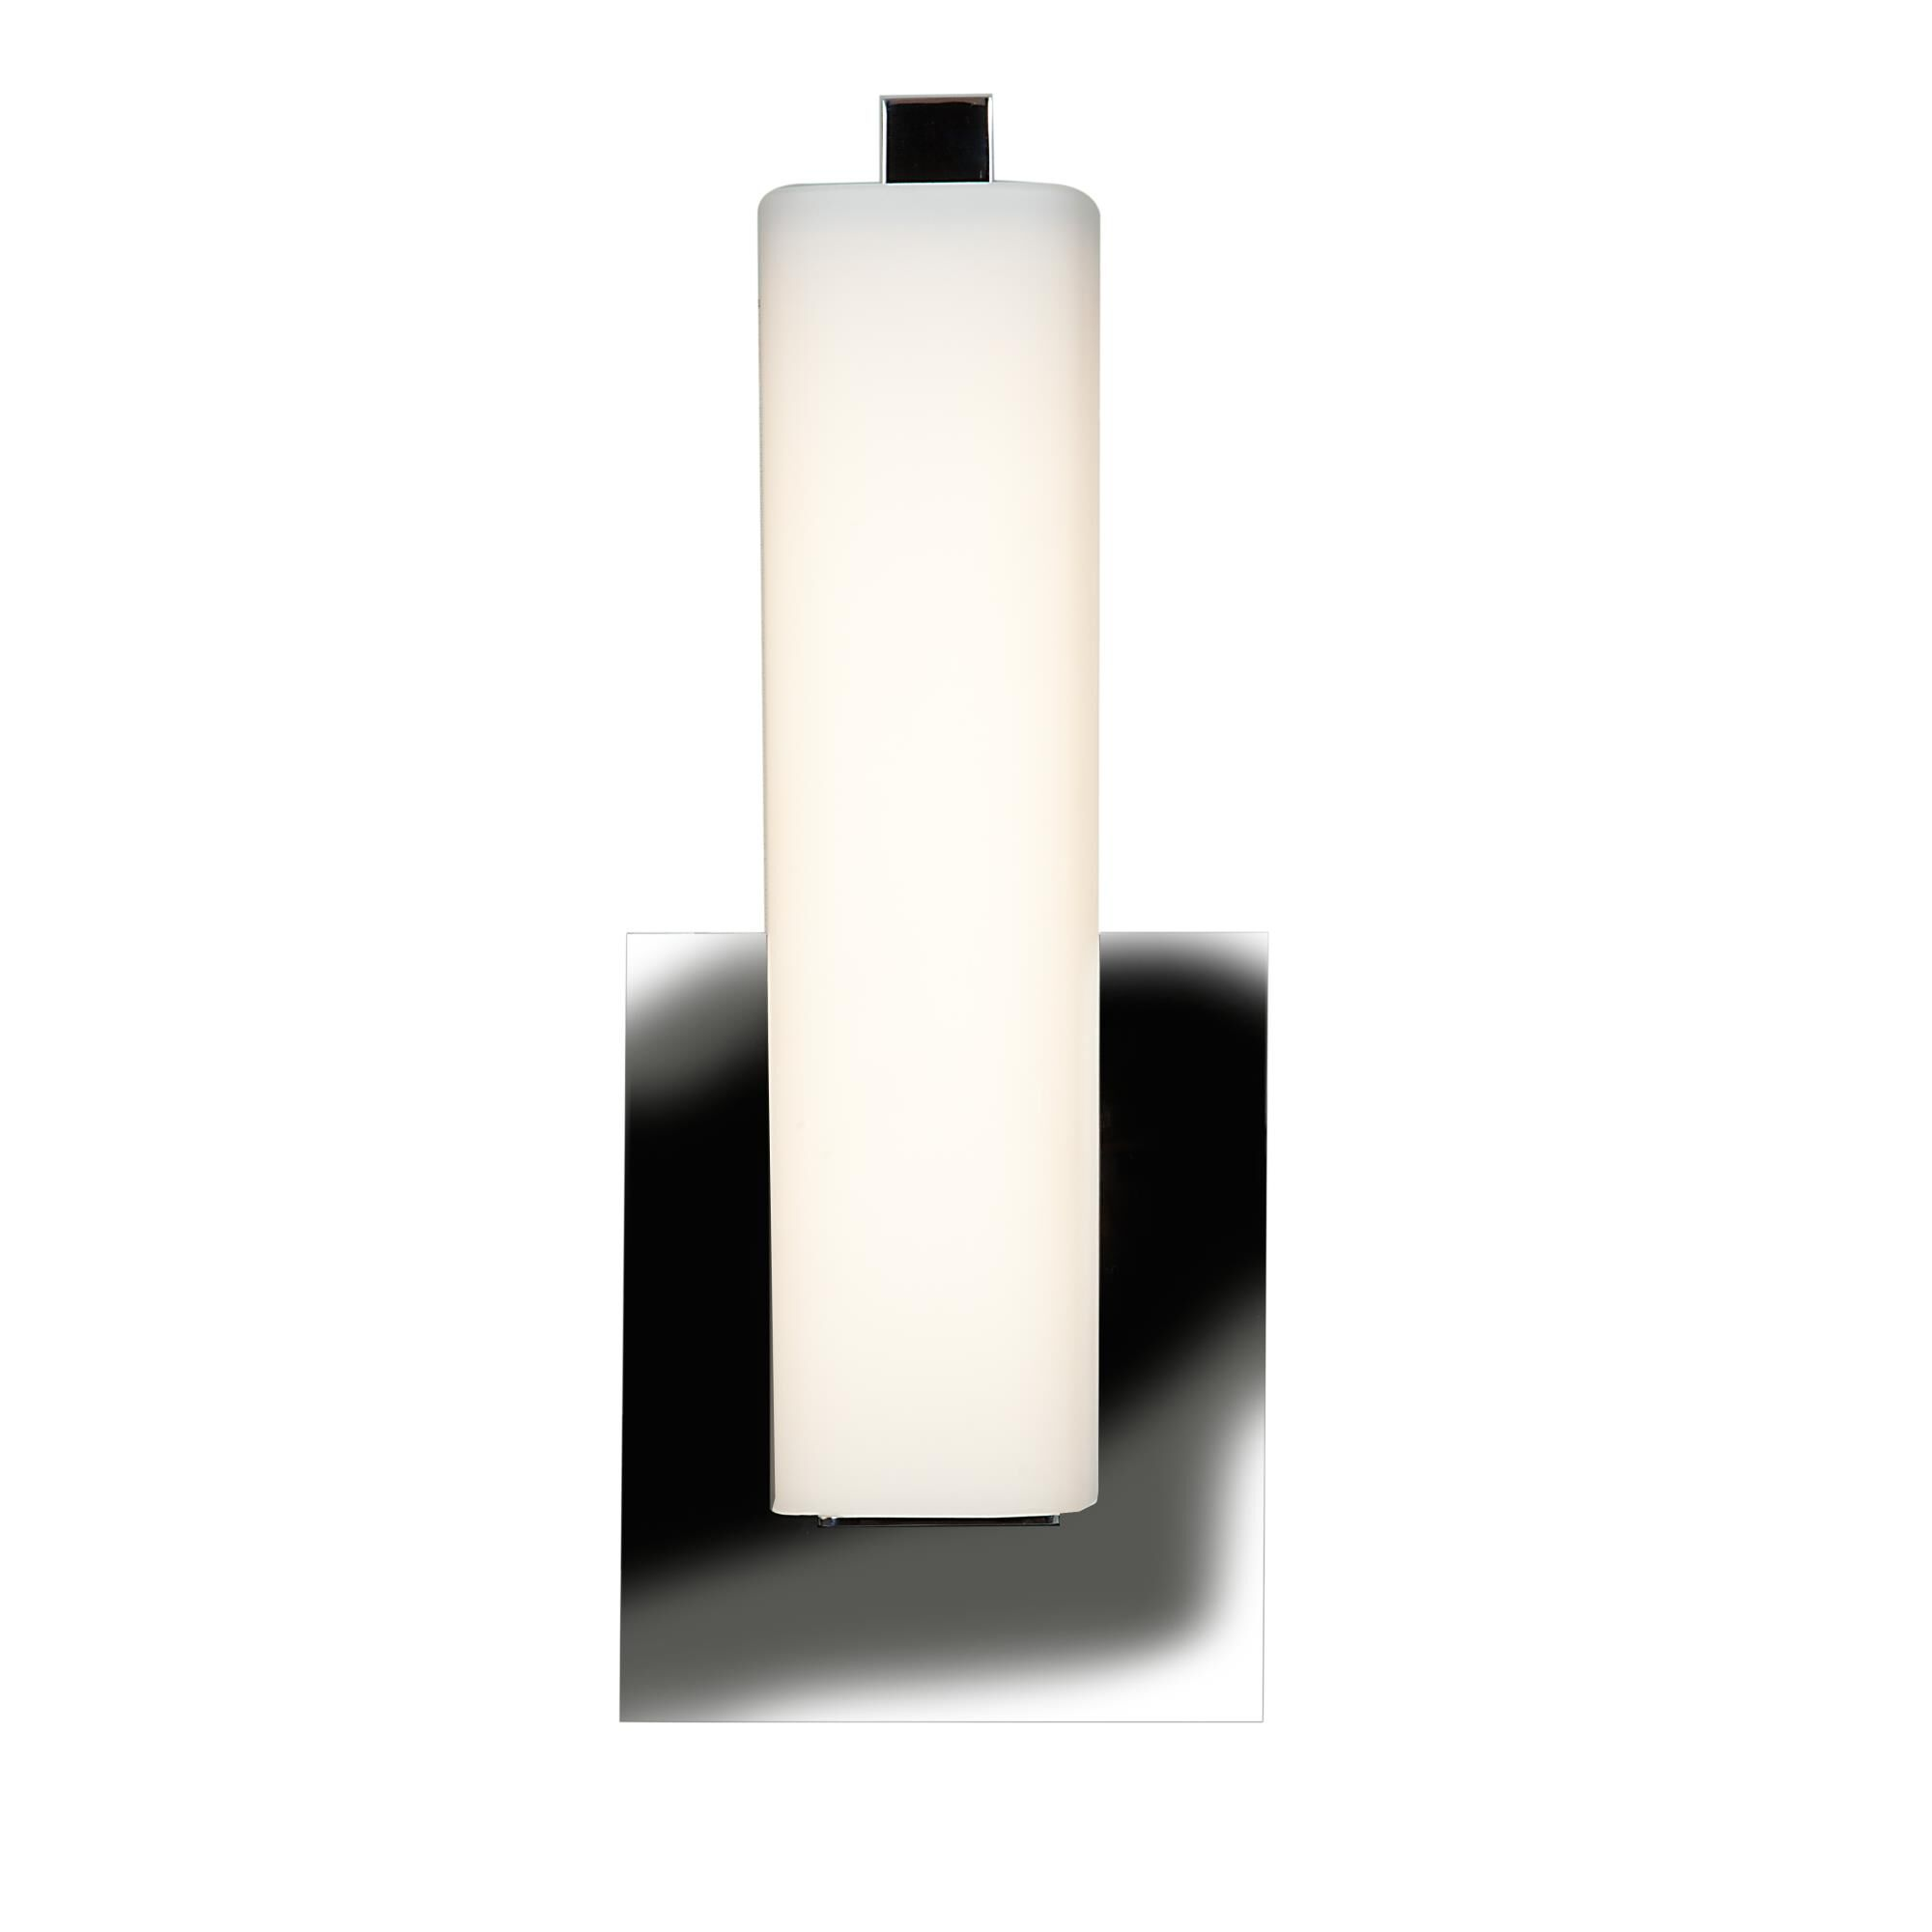 Access Lighting Chic 12 Inch LED Wall Sconce Chic 70034LEDD CHOPL Modern Contemporary